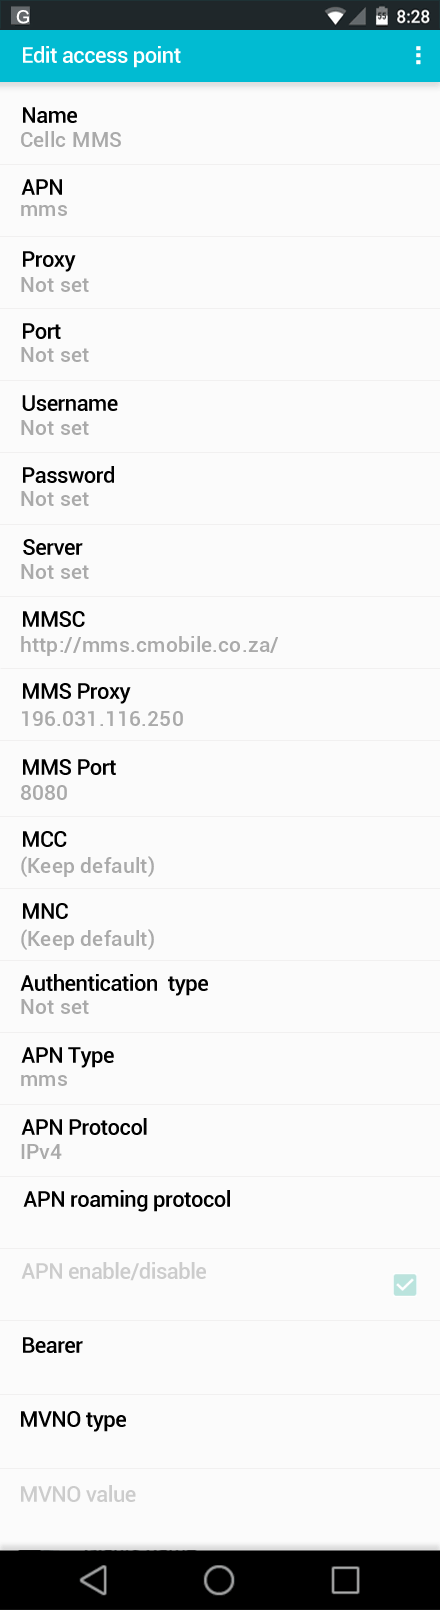 Cellc MMS APN settings for Android screenshot